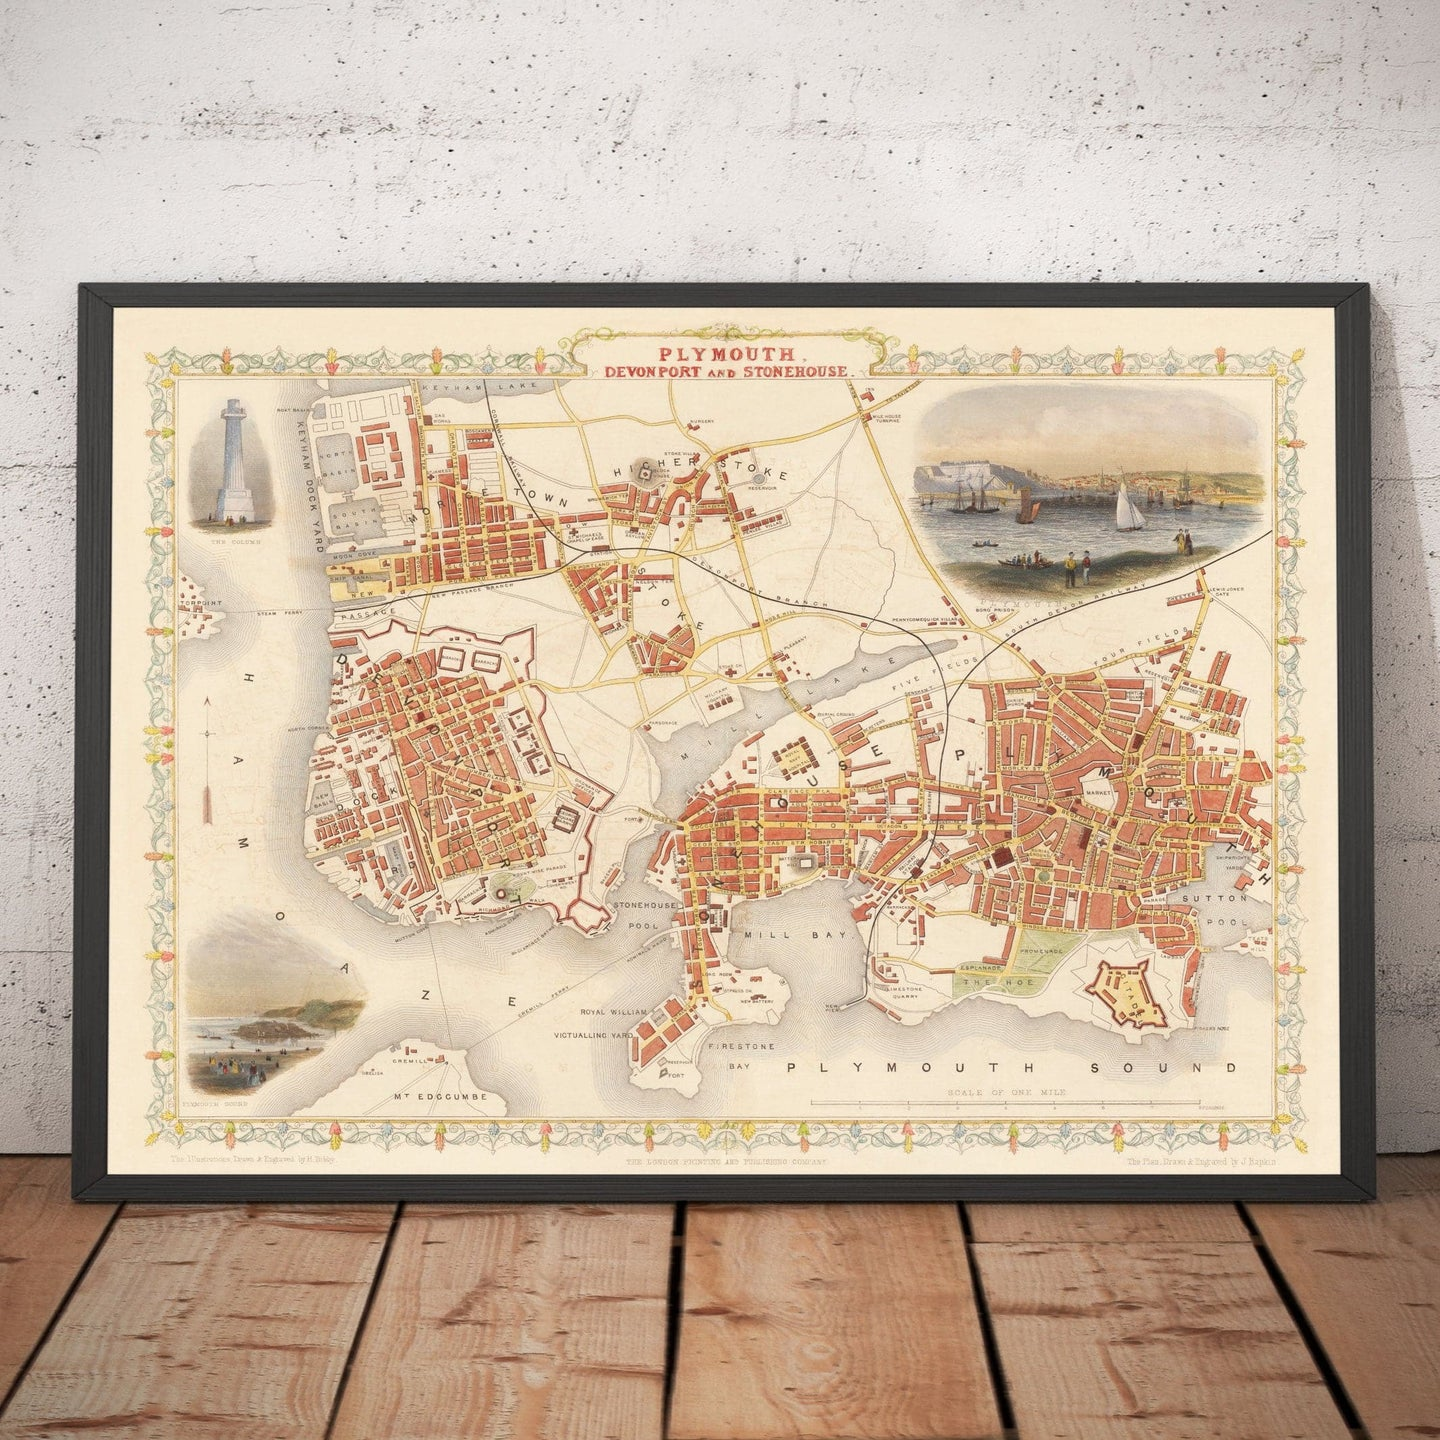 Old Map of Plymouth in 1851 by Tallis, Rapkin - Stonehouse, Devonport - Handcoloured Vintage Wall Art - Christmas Gift - Framed, Unframed